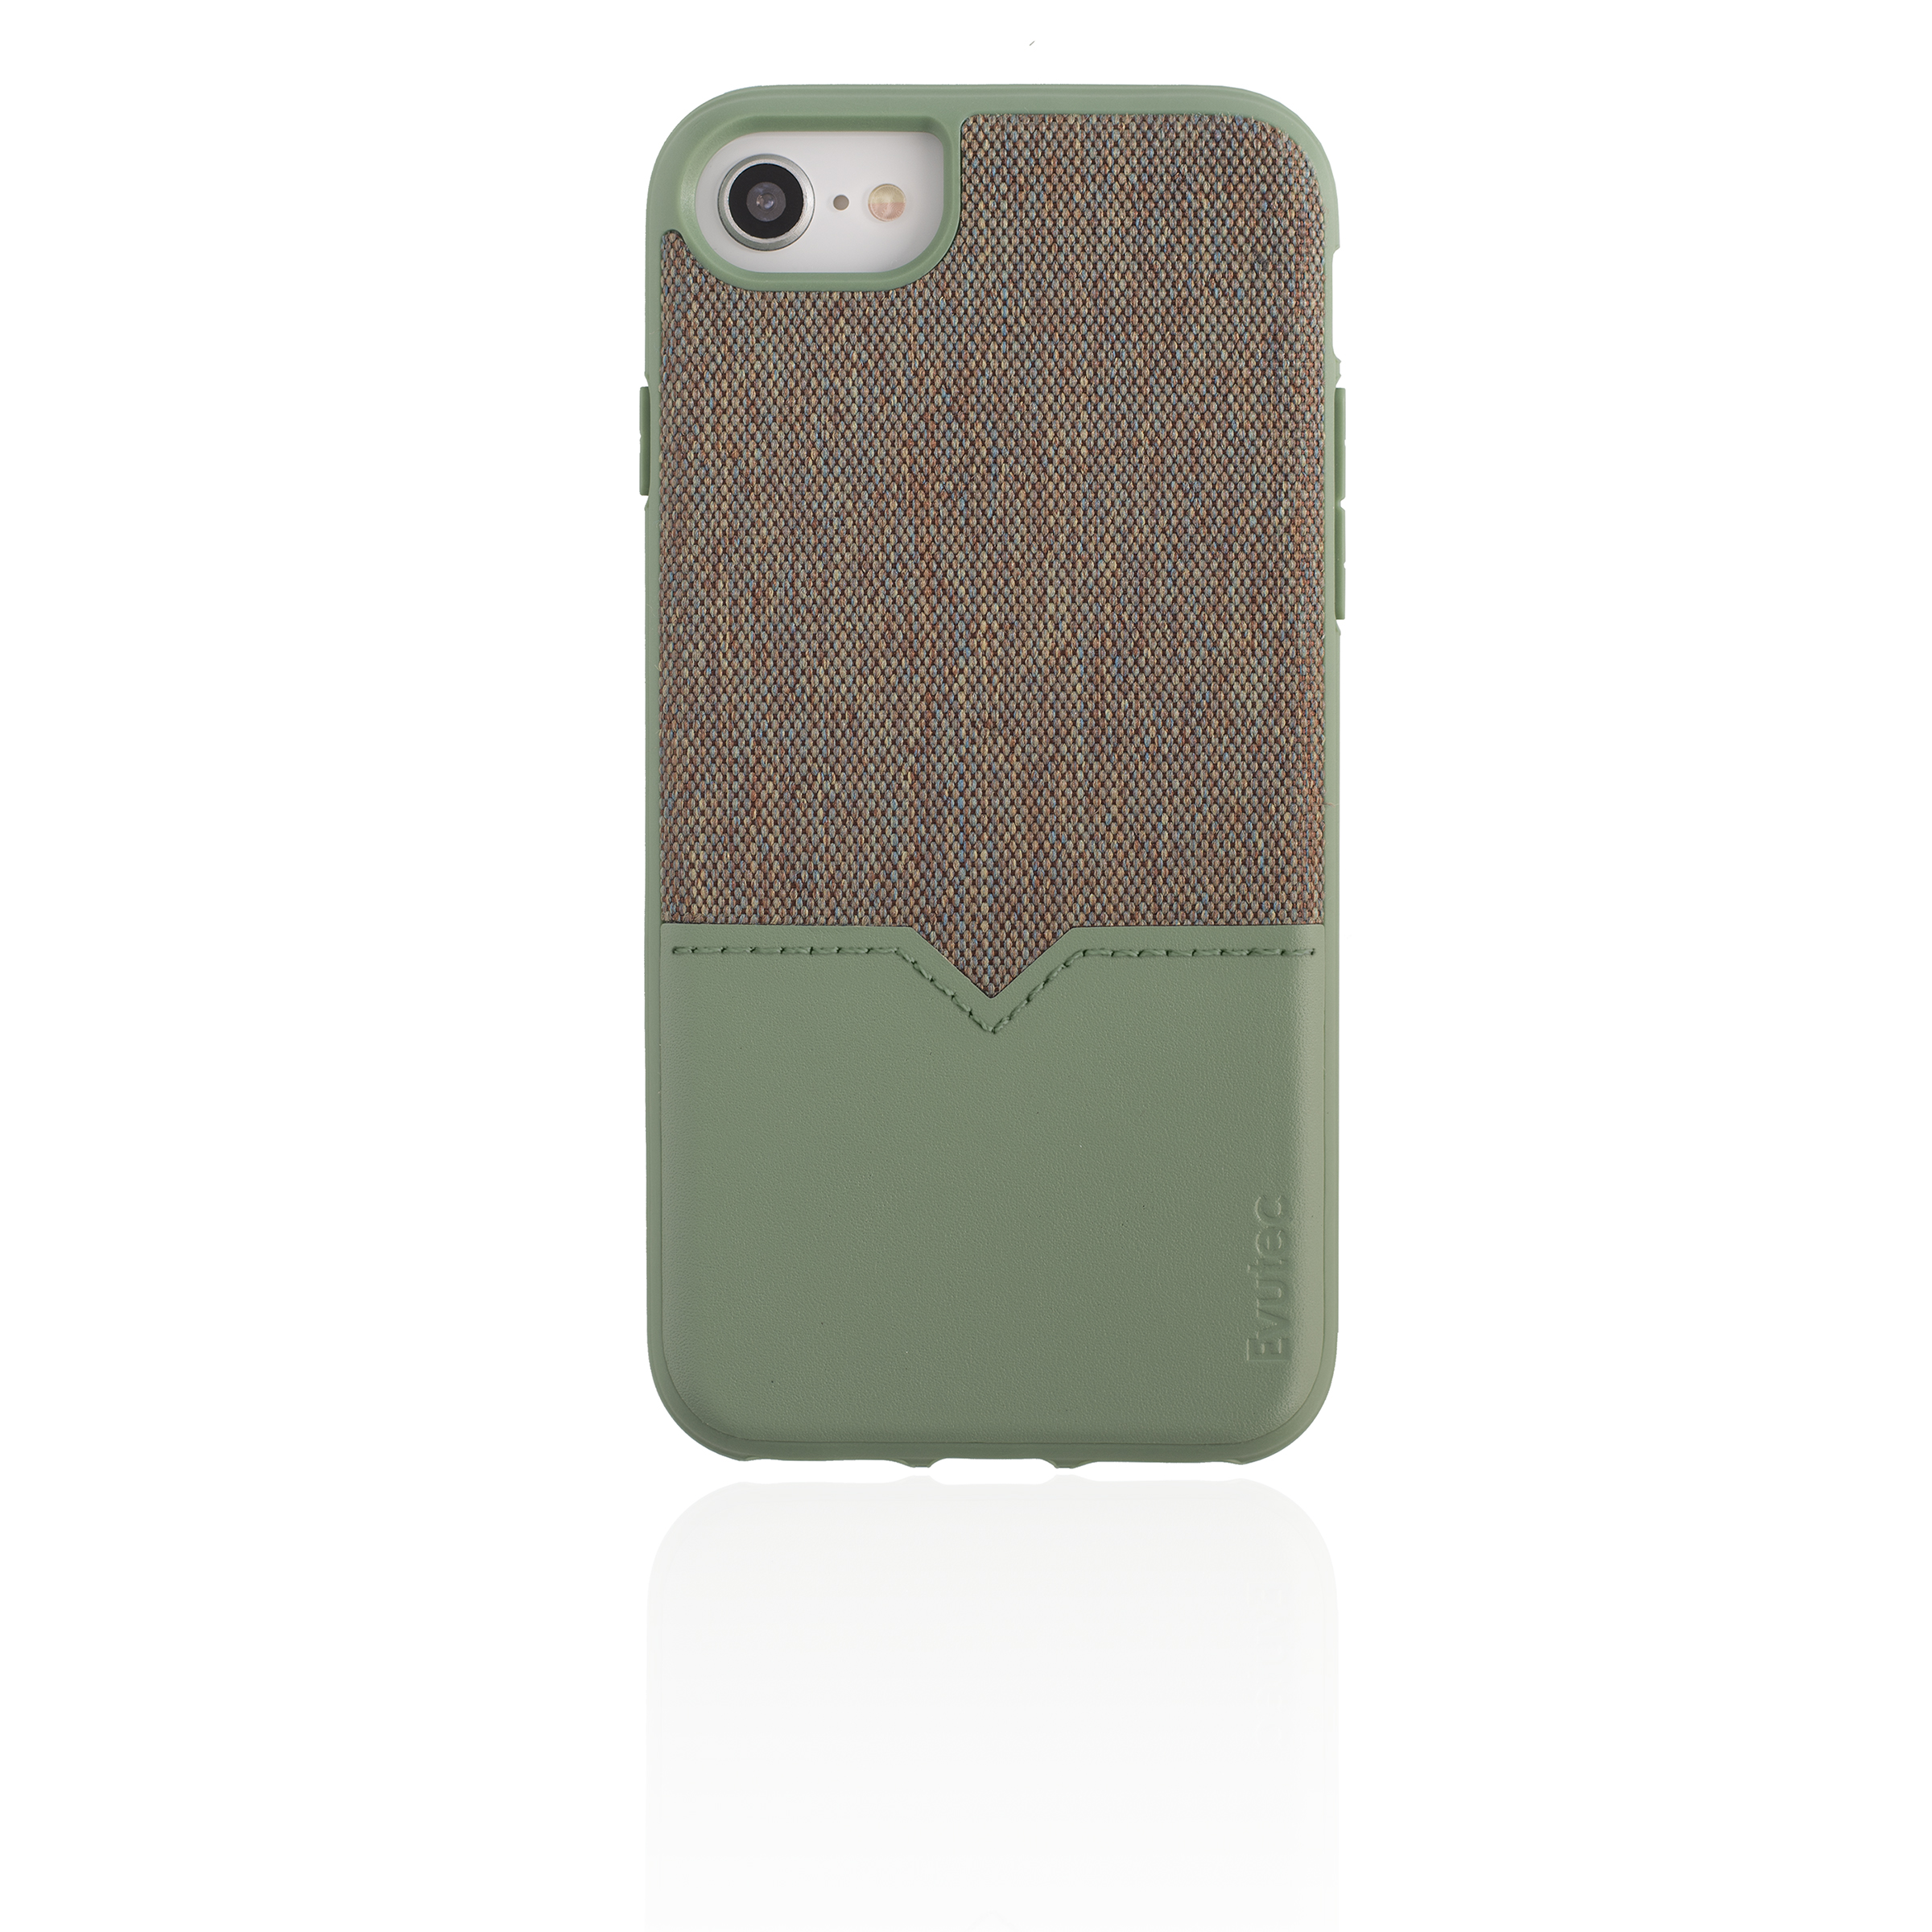 EVUTEC NH68PMTD10 SAGE IPHONE CASE FOR 6 6S 7 7S & 8 PLUS